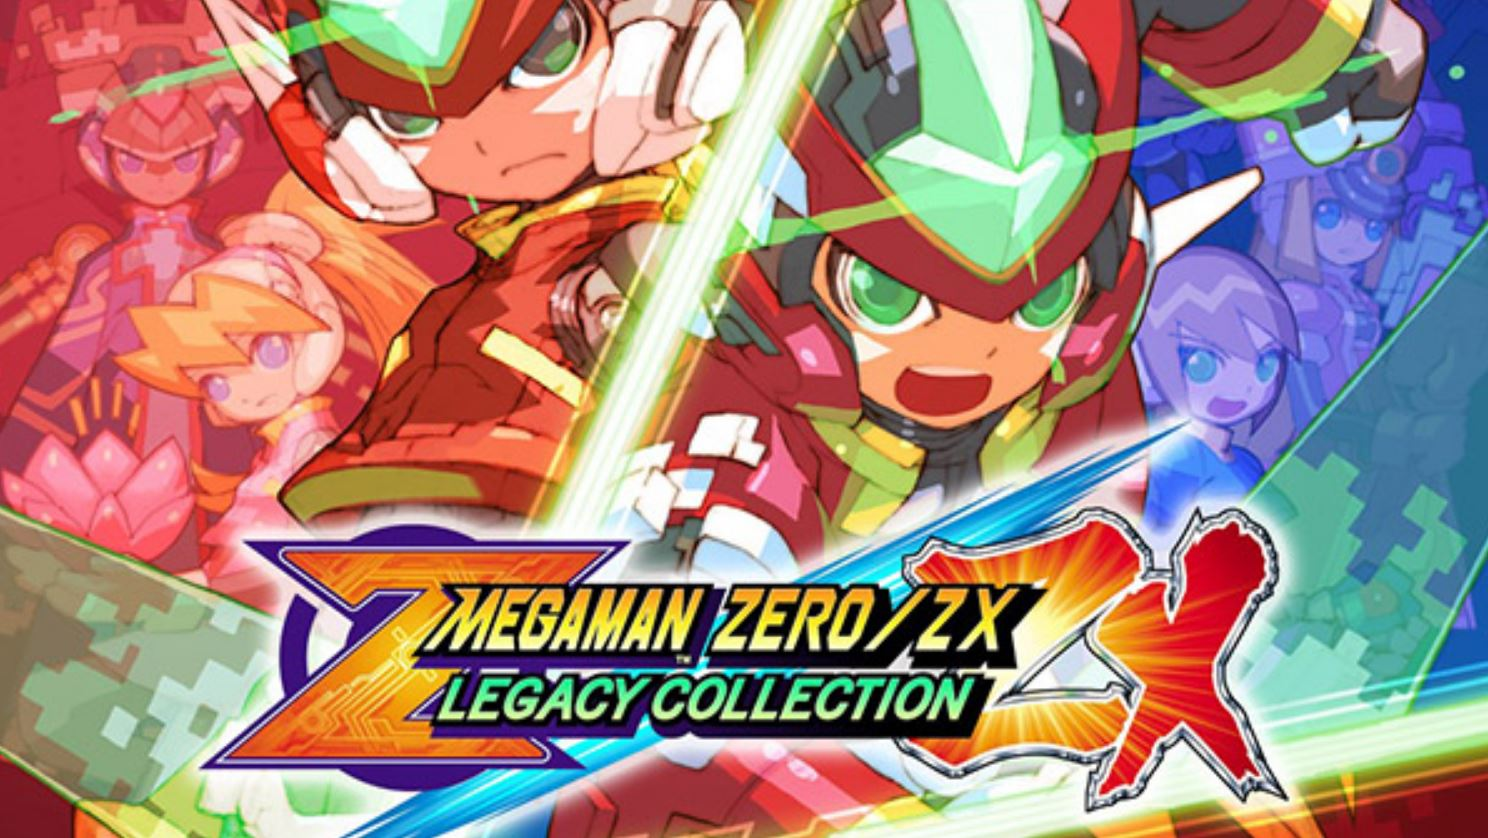 Mega Man Zero Zx Legacy Collection Ps4 Review Playstation Universe